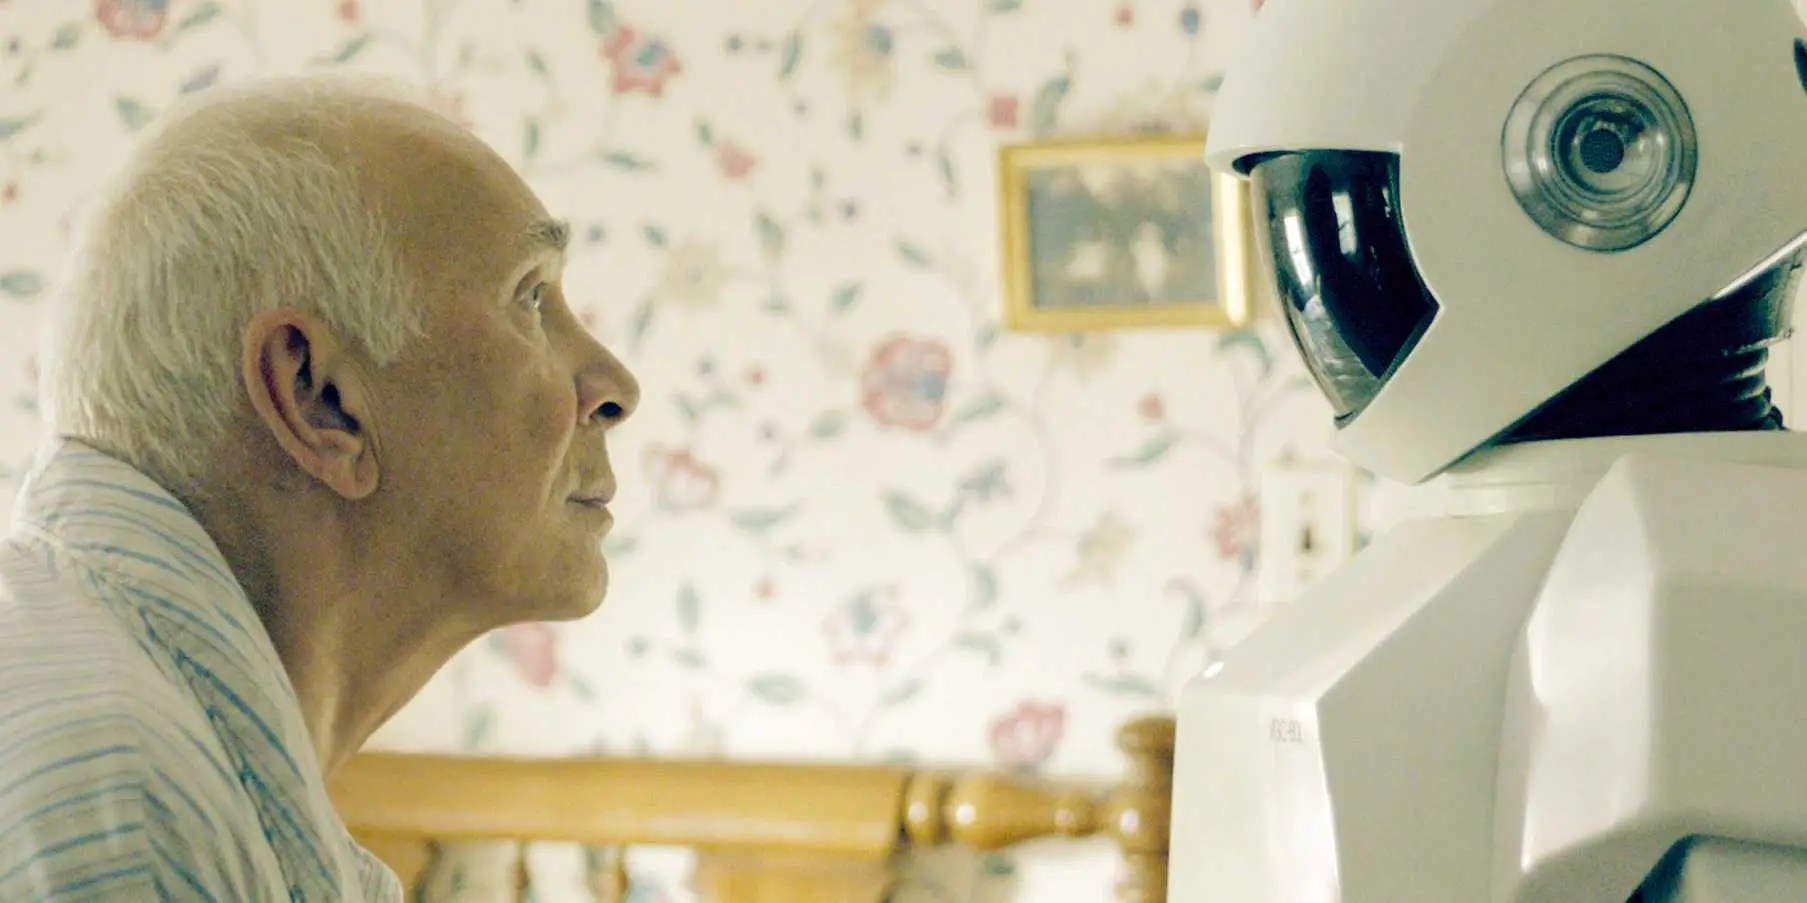 A Robot To Care For You In Old Age Business Insider